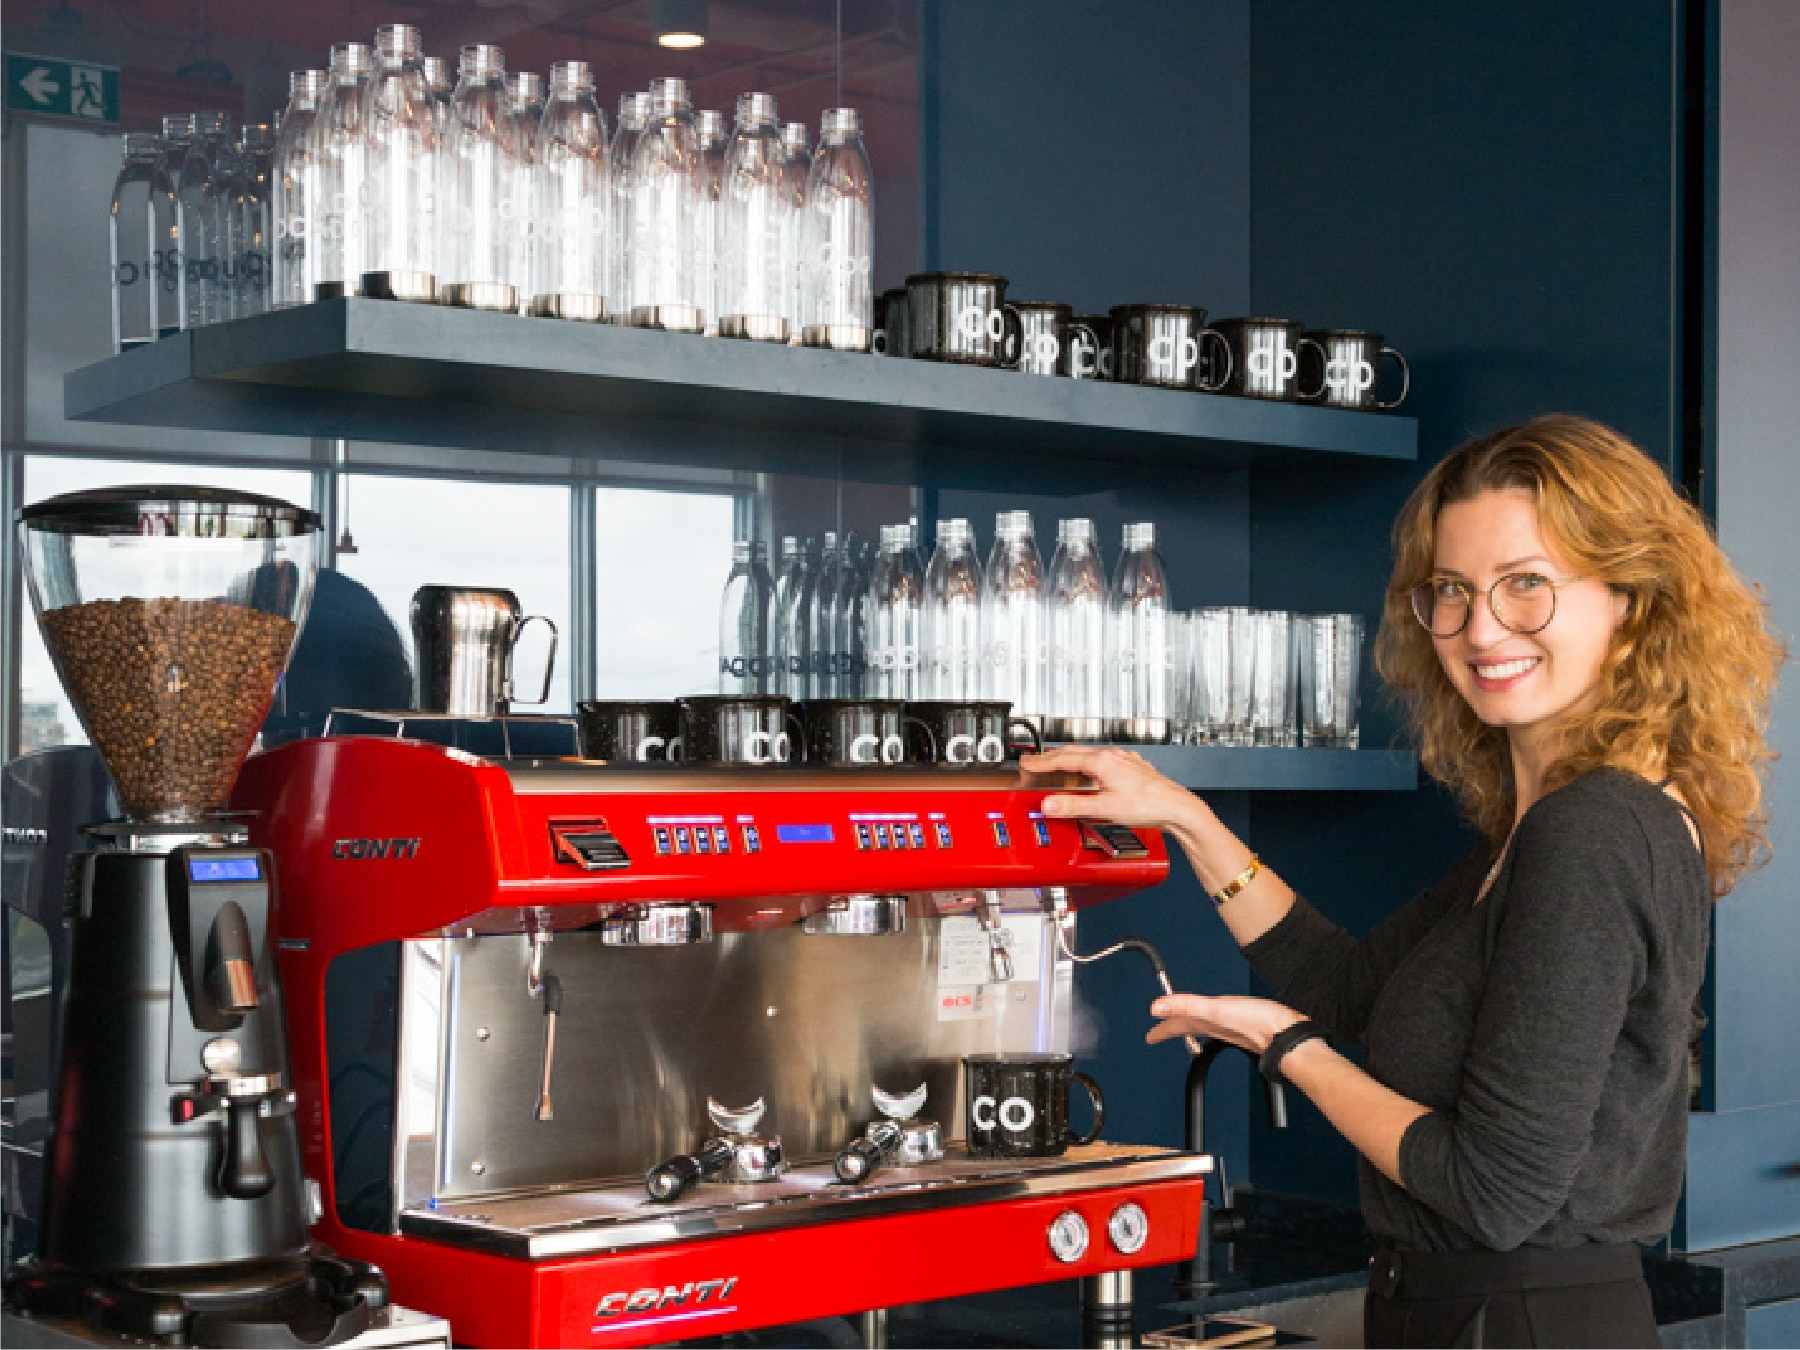 OCAD U CO espresso coffee machine